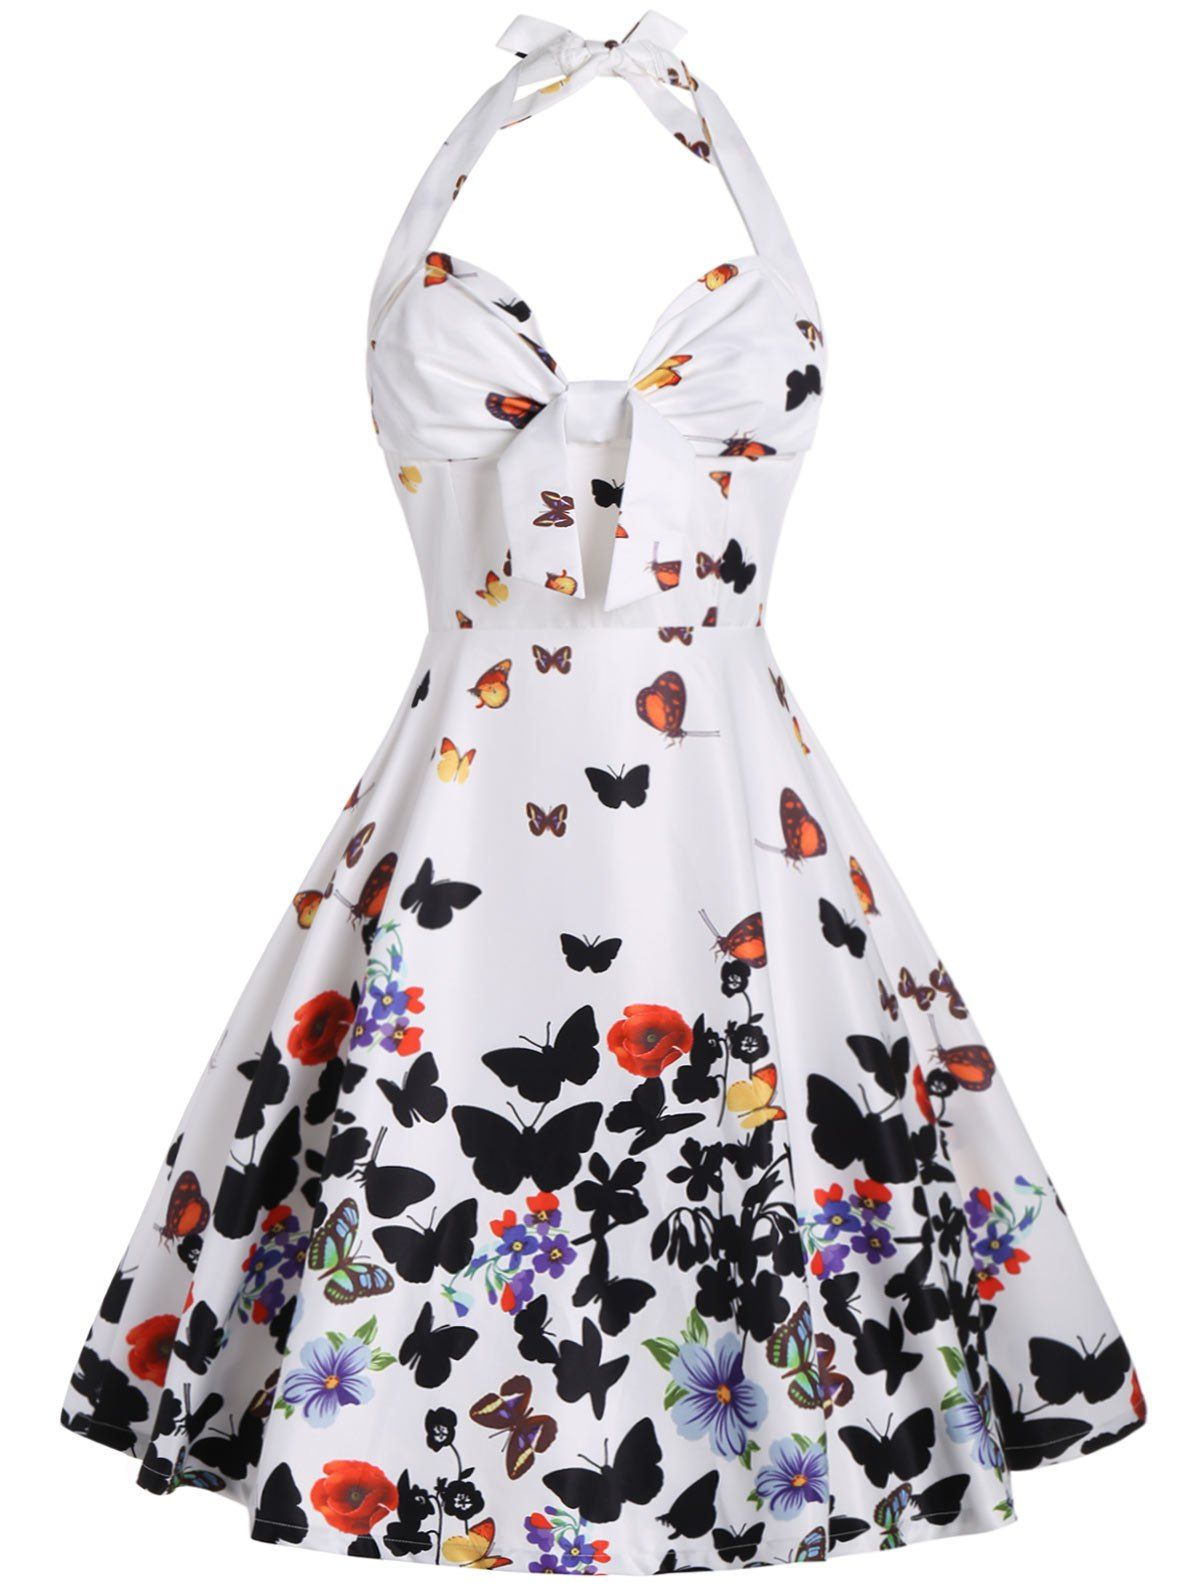 Butterfly Print Halter A Line Dress | Butterfly print dress